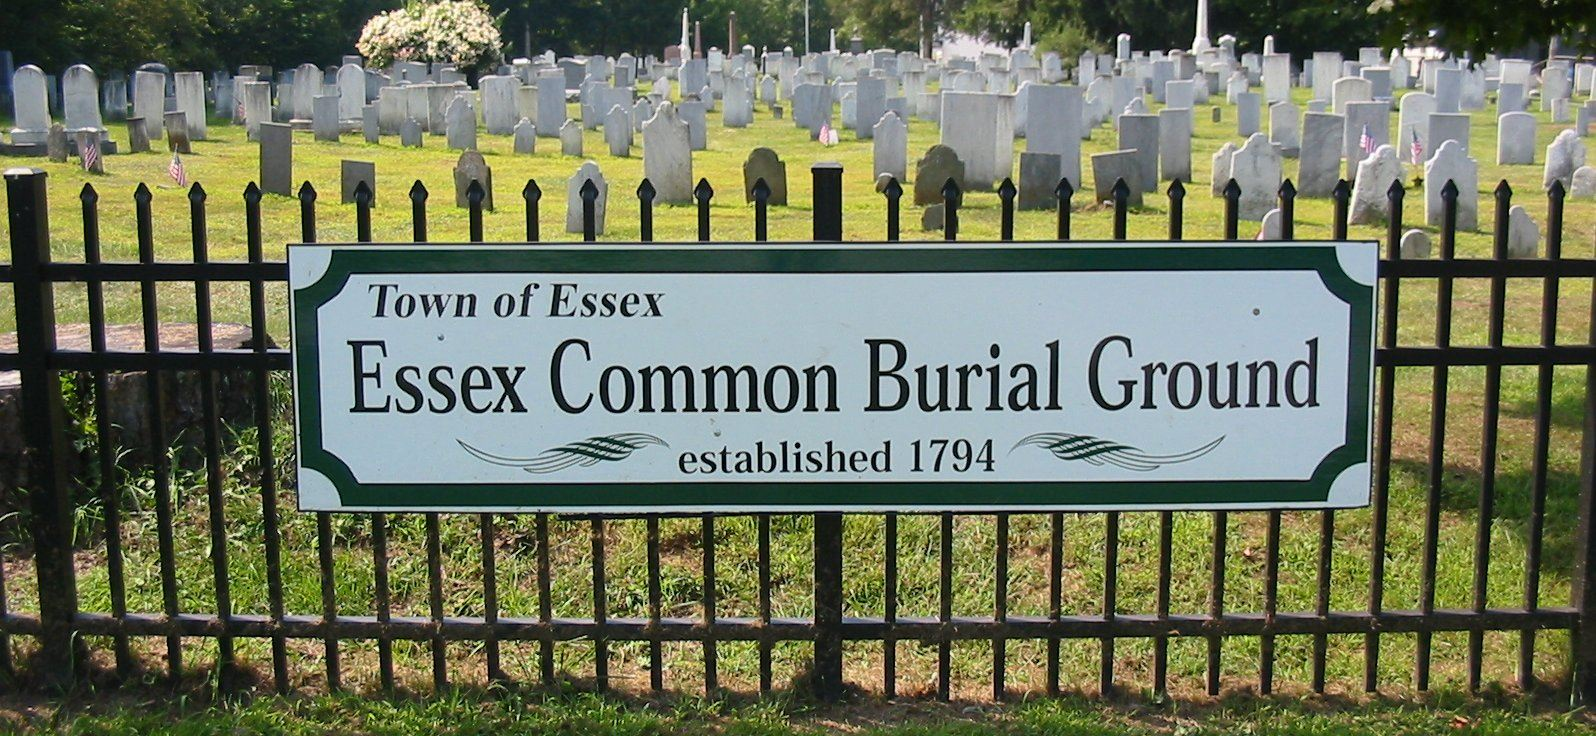 Essex Common Burial Ground Established 1794